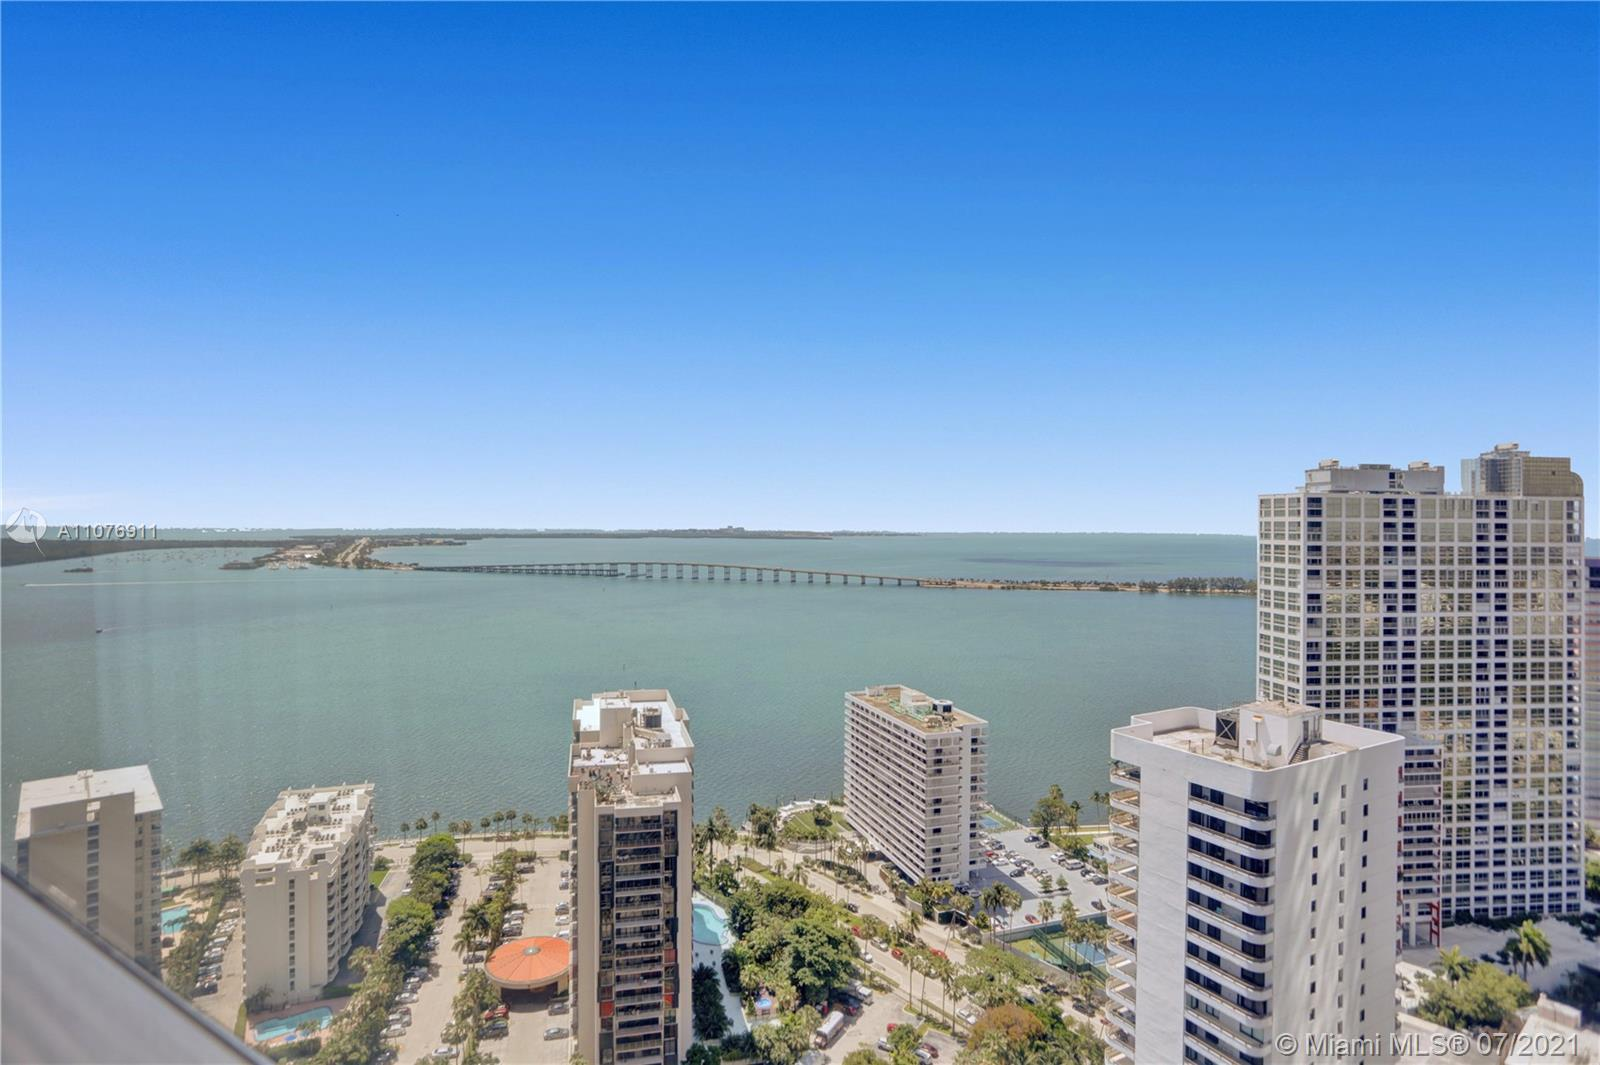 LEGENDARY FOUR SEASONS CONDO- HOTEL STUDIO UNIT WITH BEST SOUTH UNOBSTRUCTED VIEW OF THE BAY AND KEY